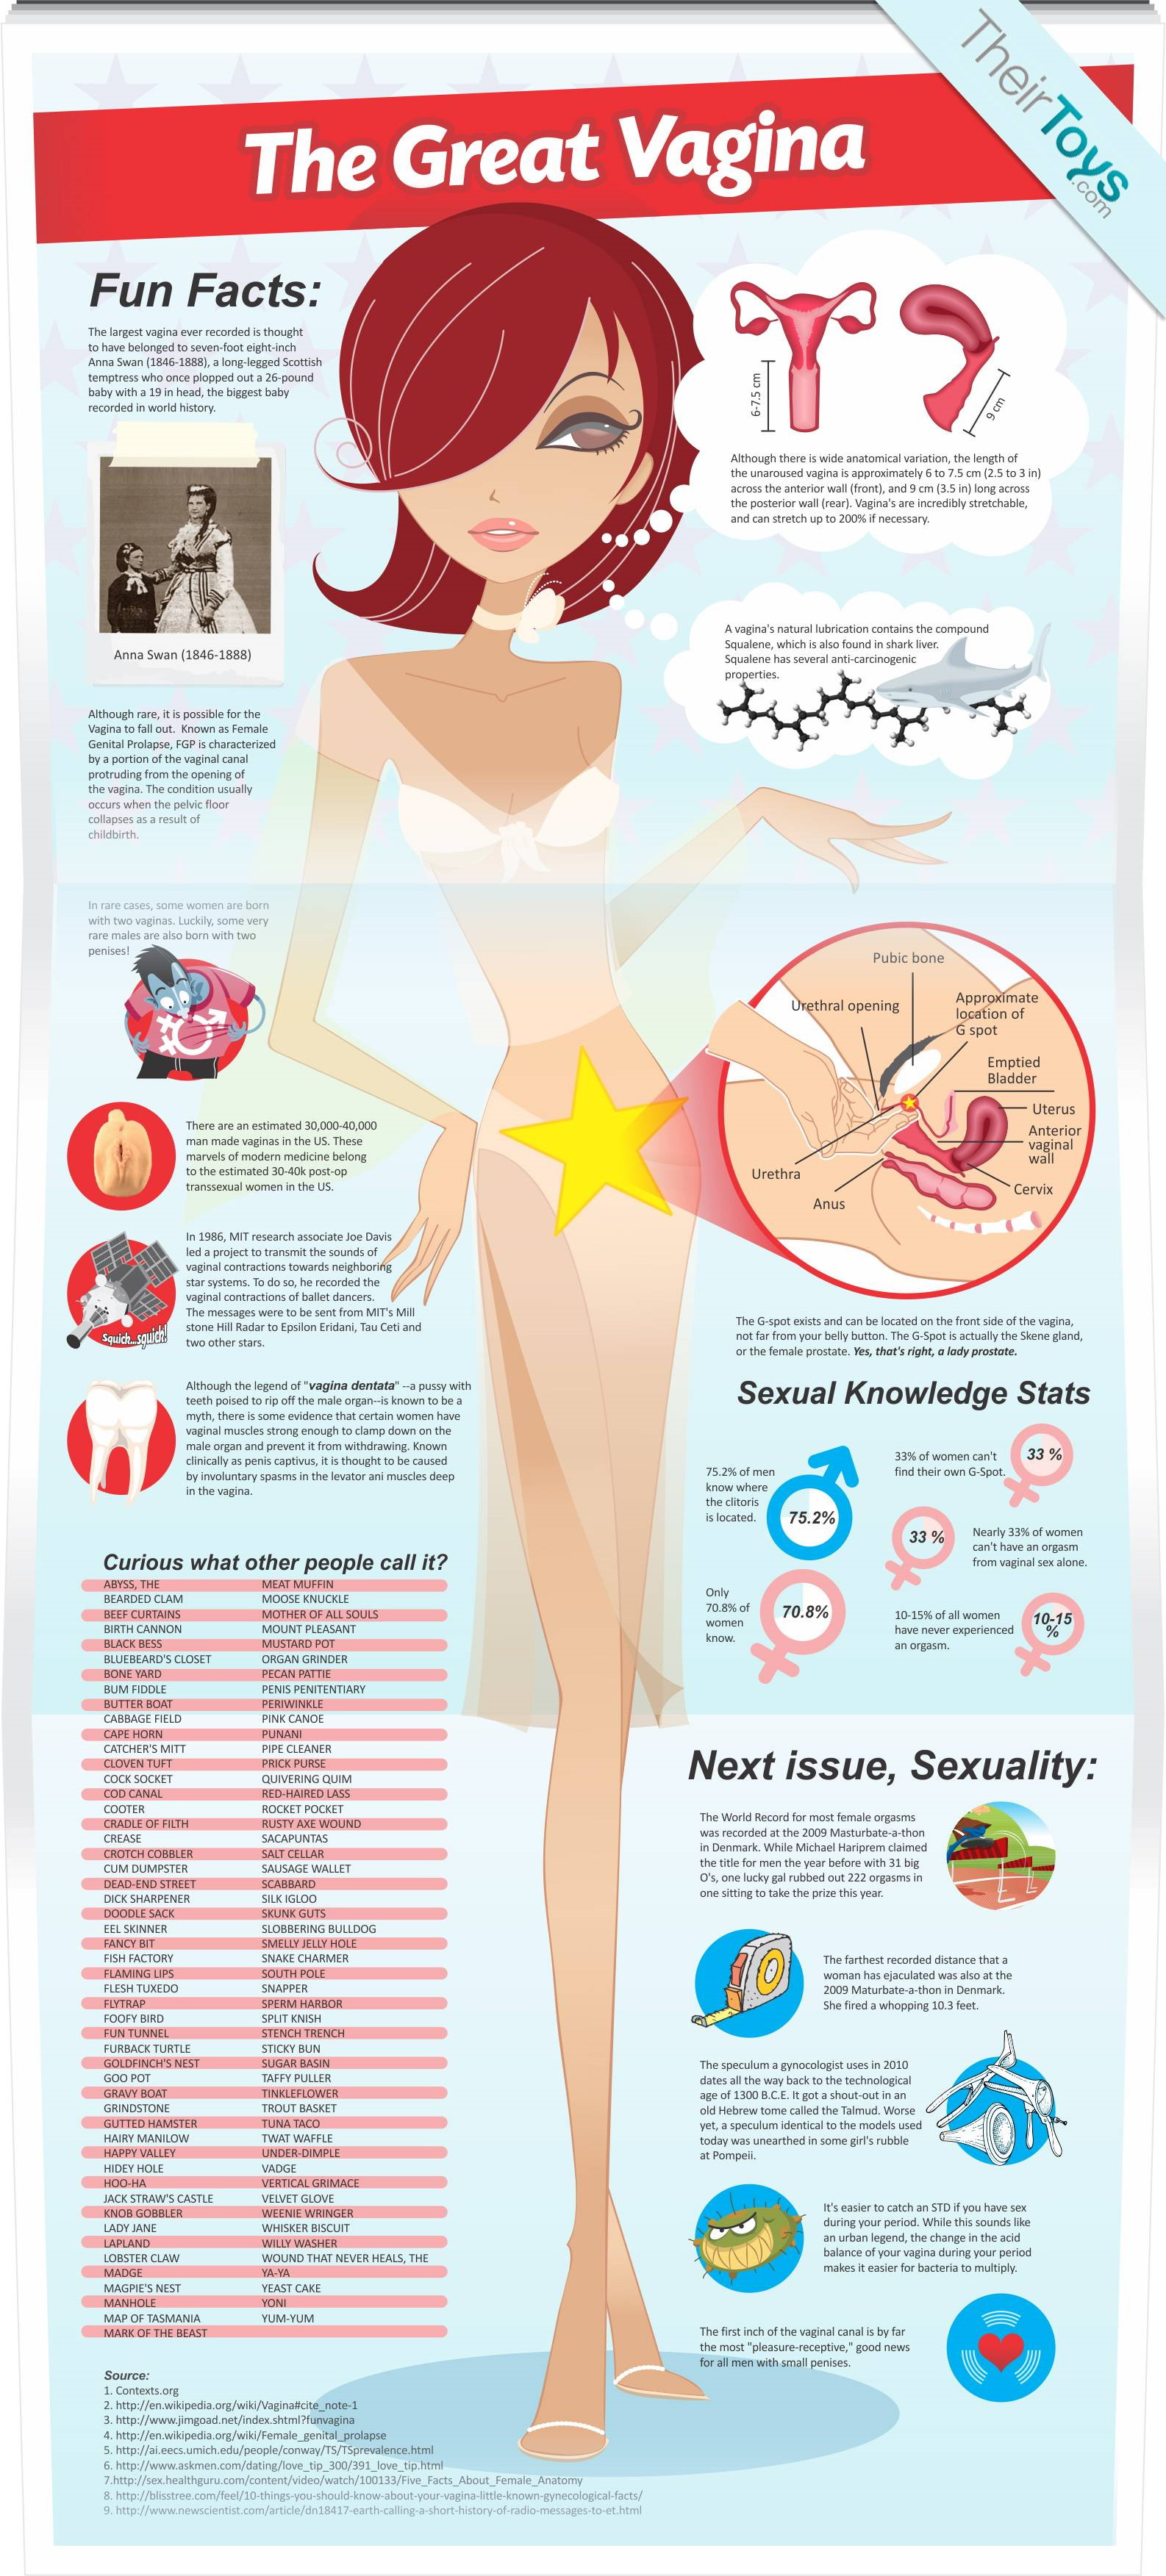 The Great Vagina, An Infographic